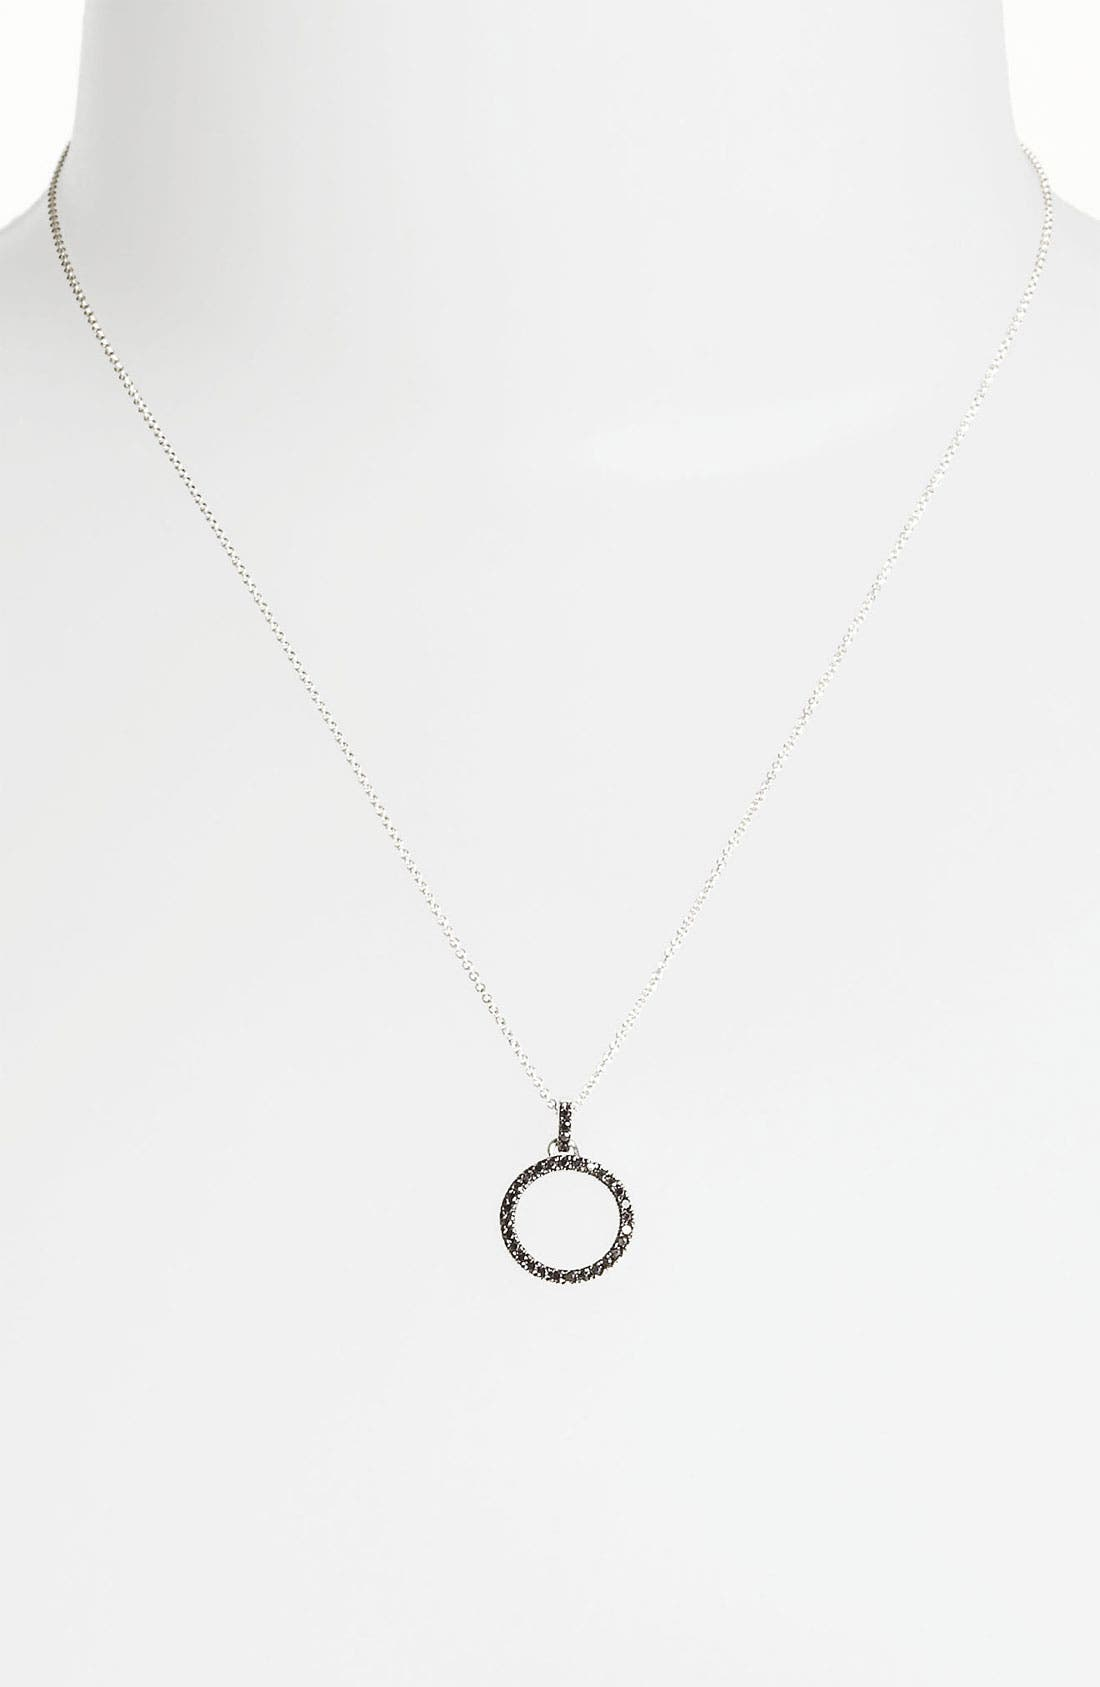 Alternate Image 1 Selected - Bony Levy 'Eclipse' Open Circle Diamond Pendant Necklace (Nordstrom Exclusive)